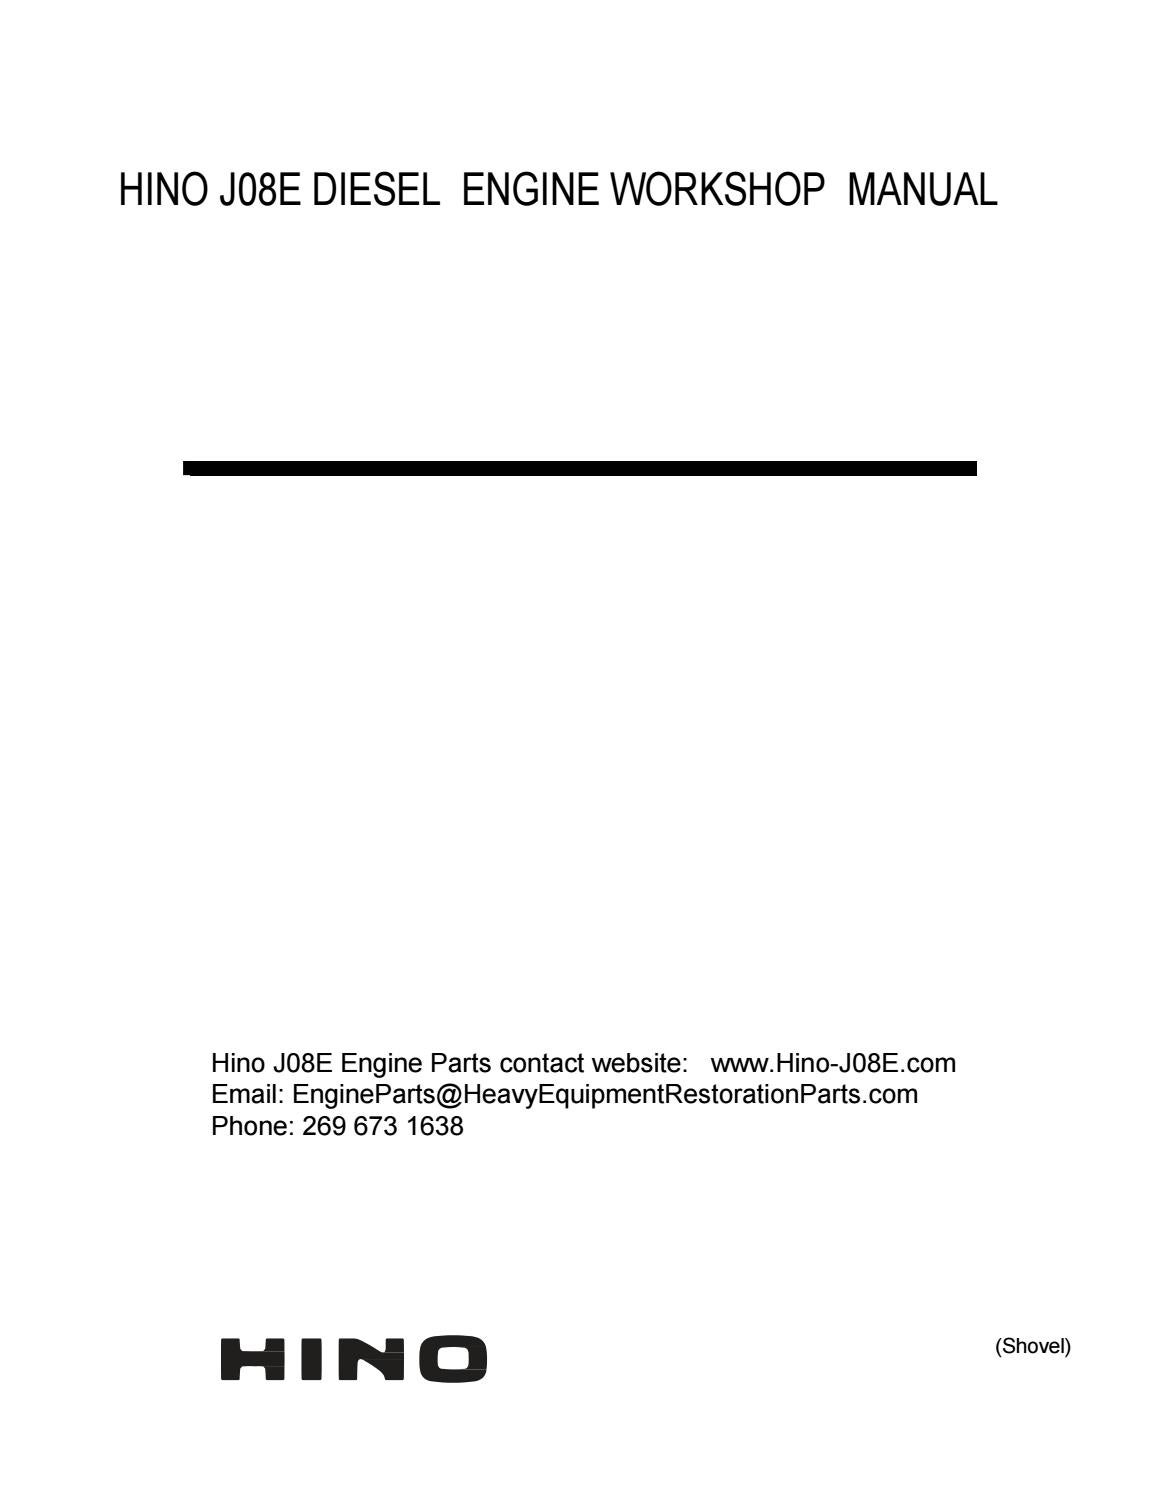 Hino J08e Engine Workshop Manual Free Download By Engineparts2 Issuu